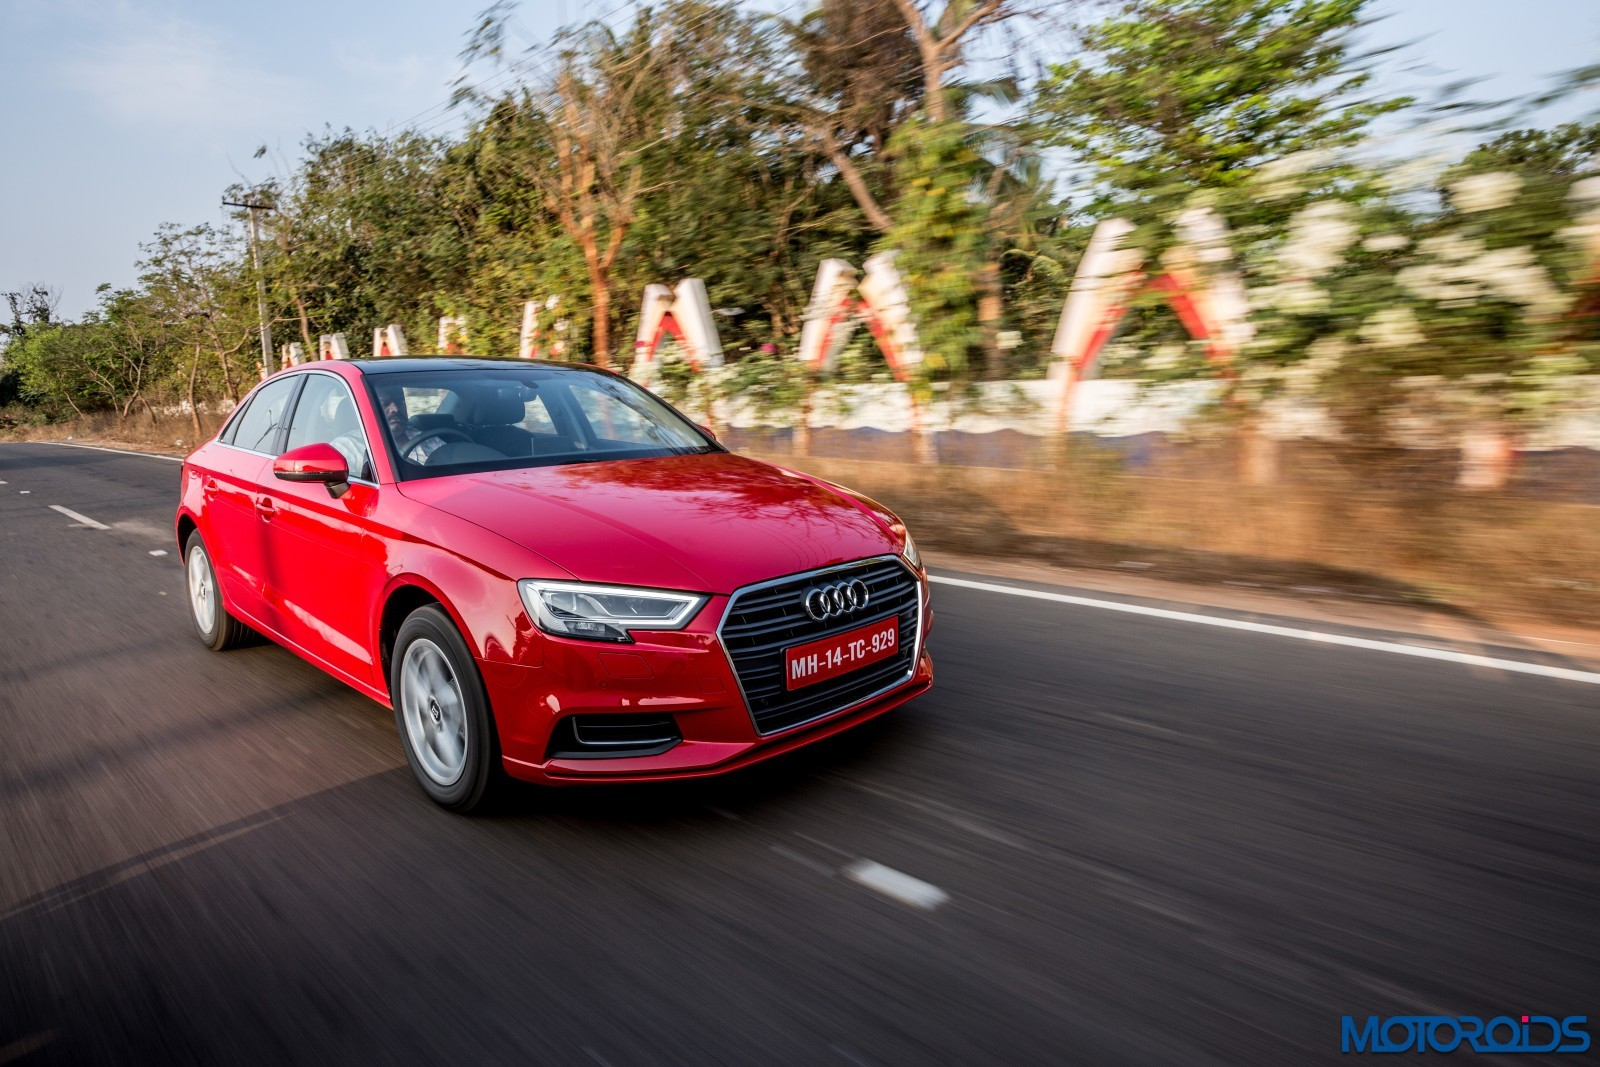 new-2017-Audi-A3-facelift-red-3